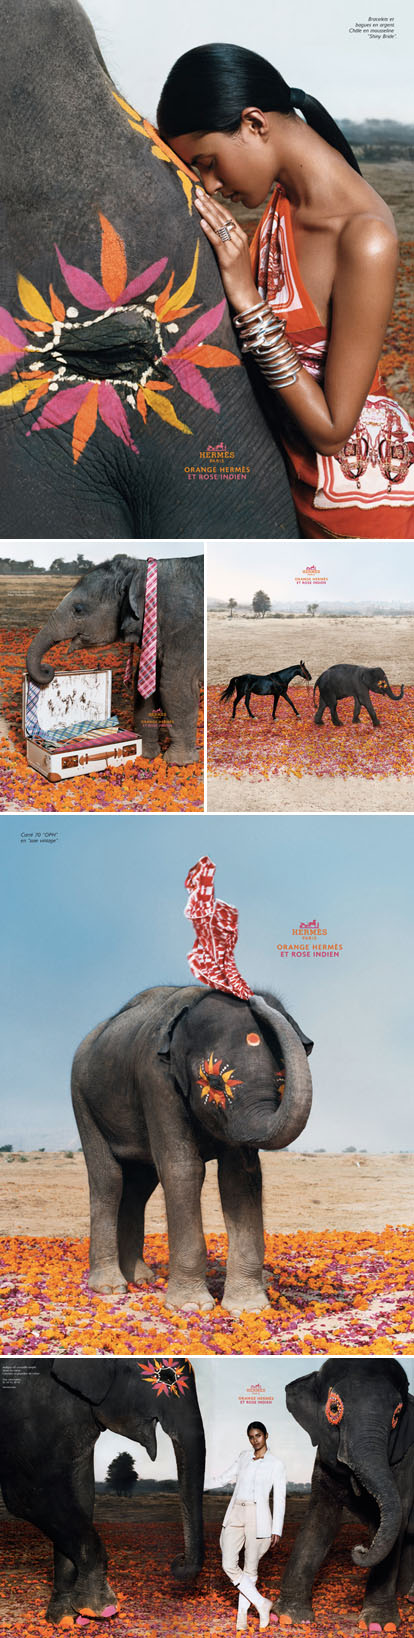 Hermes Orange, India Pink ad campaign